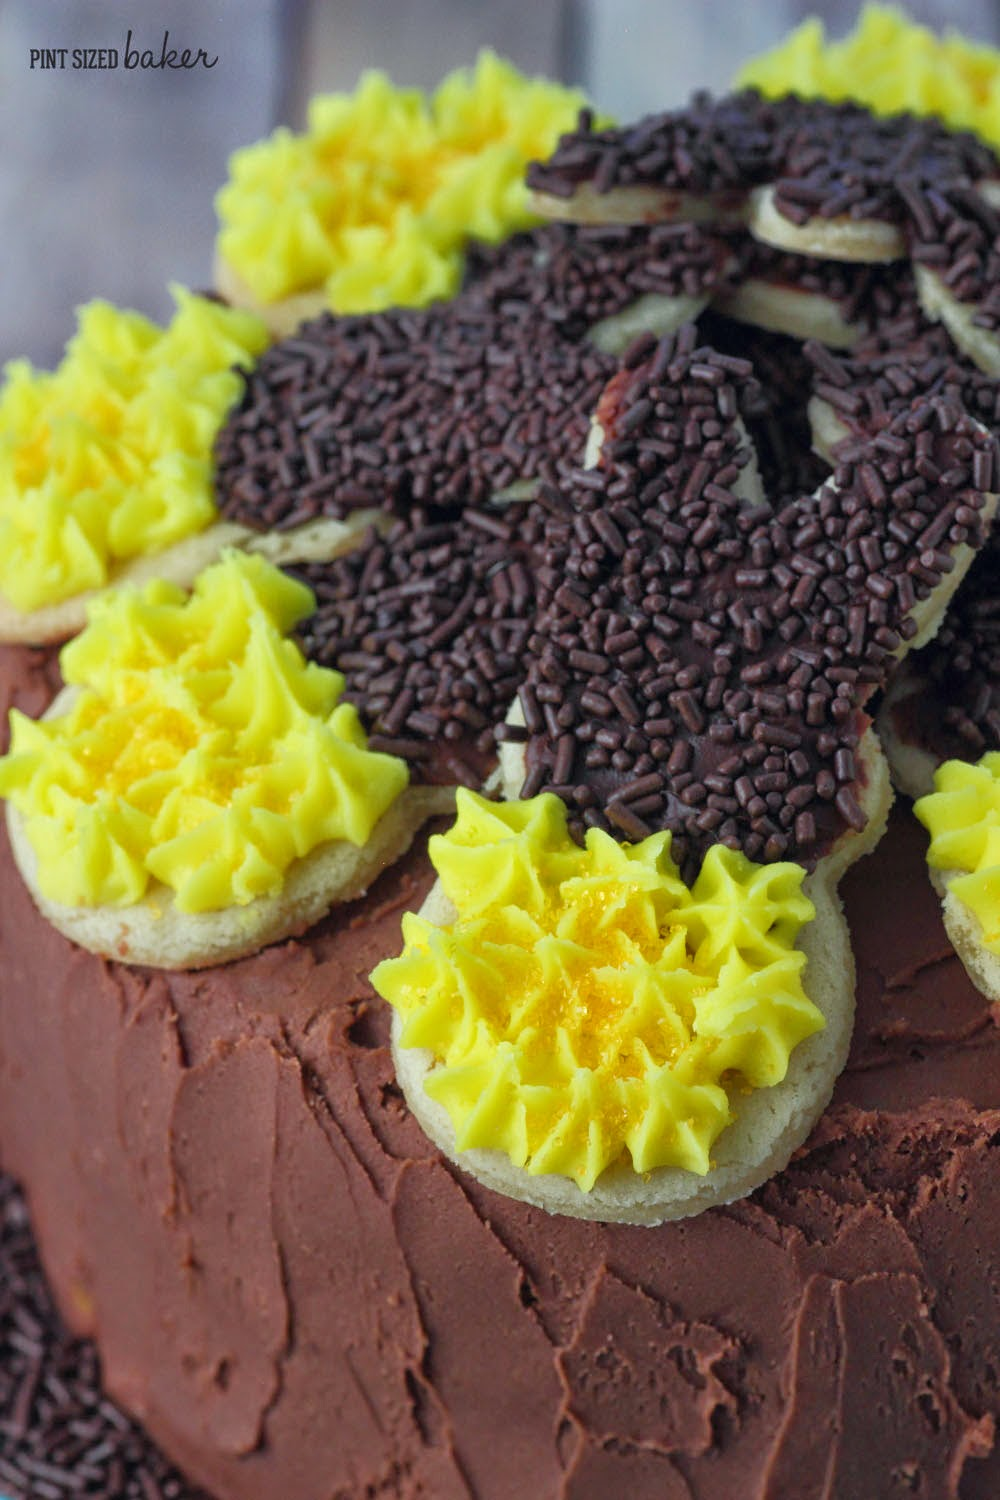 Get your kids into the kitchen and have them help you make this Peeps Bunny Cookie Sunflower Cake